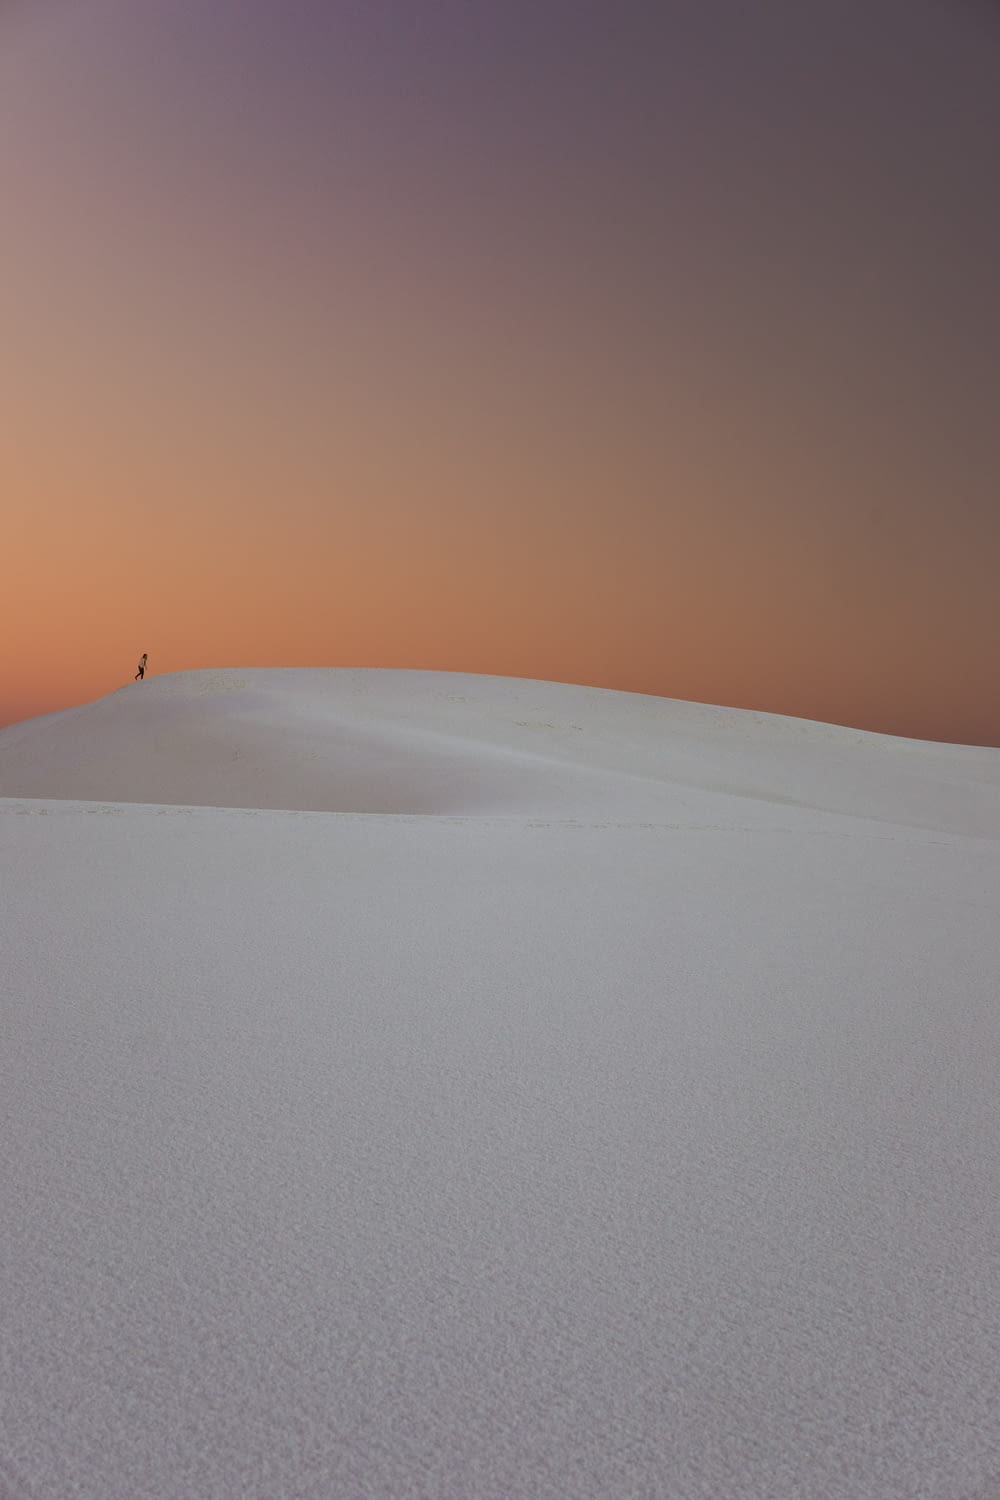 person walking in the desert dunes